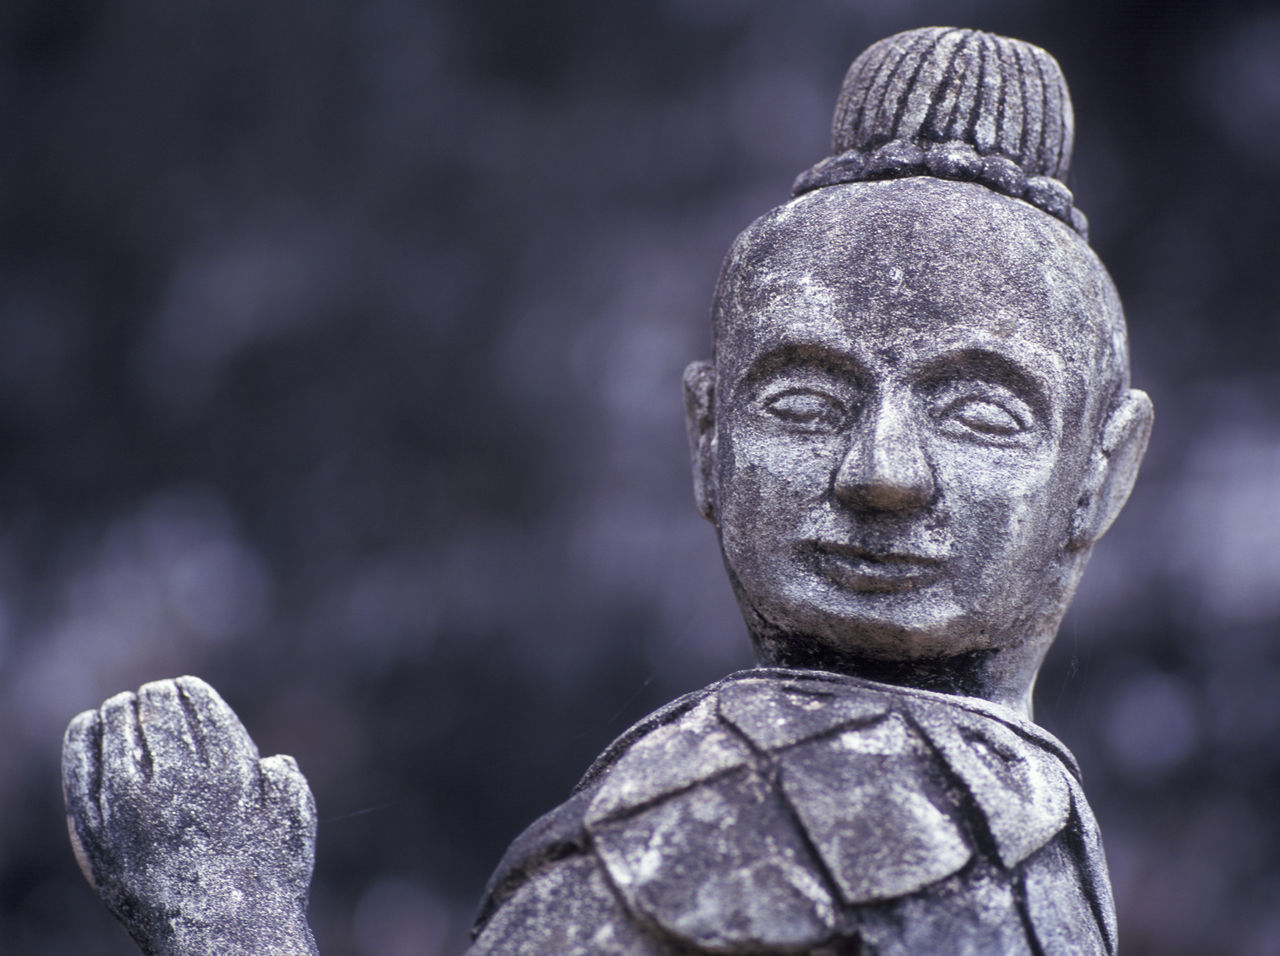 buddhist monk stone statue Buddhist Monks Close-up Concrete Culpture Day Focus On Foreground Grey Color Human Representation No People Statue Stone Stone Material